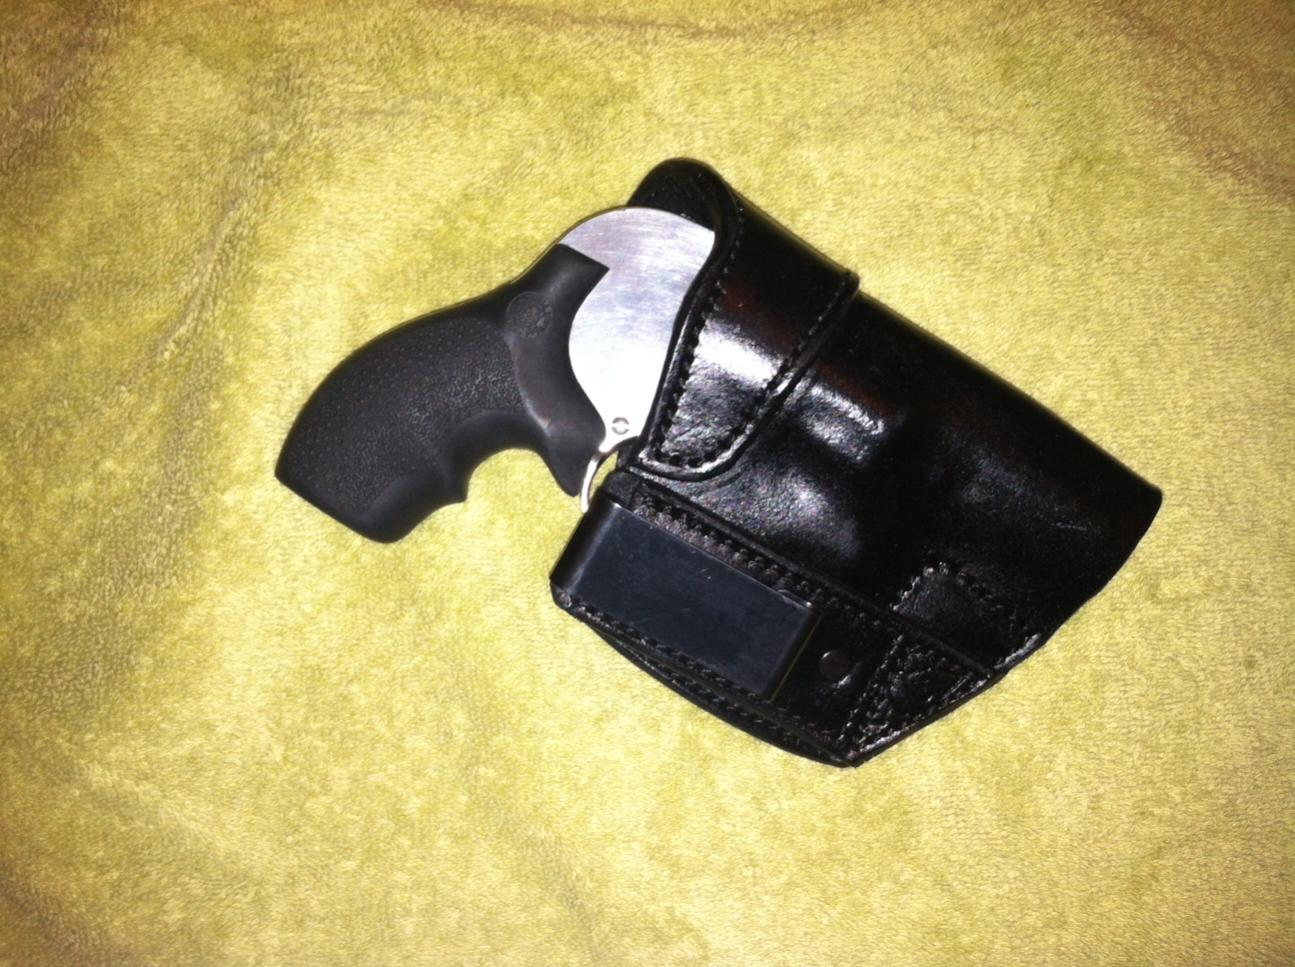 Give me some Gun and Holster suggestions for my next CCW...-649sideguard.jpg